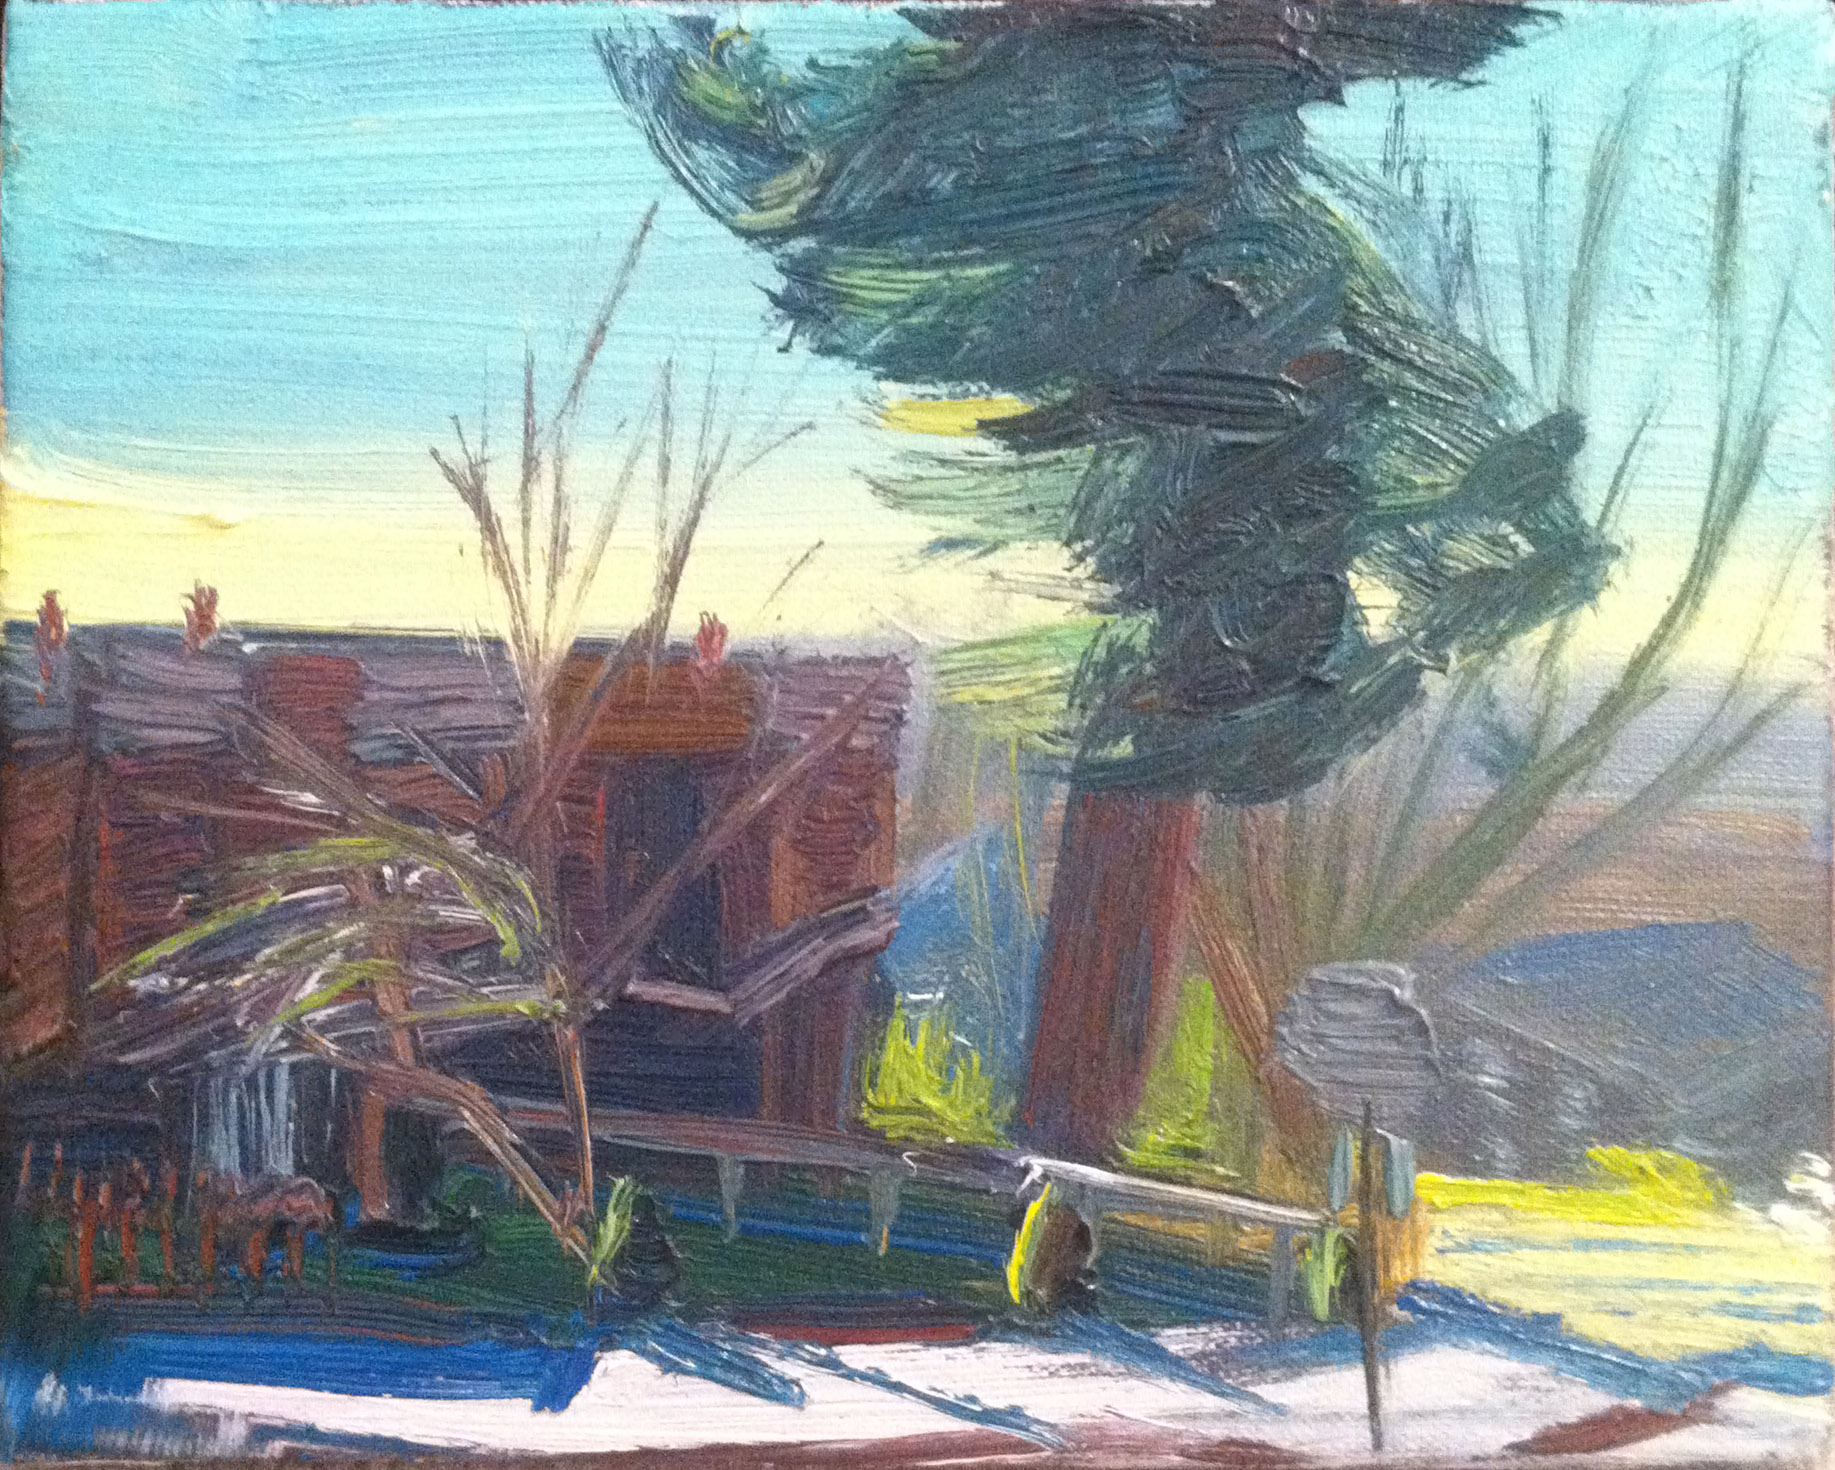 untitled (Land),  2005 oil on canvas, 8 x 10 inches